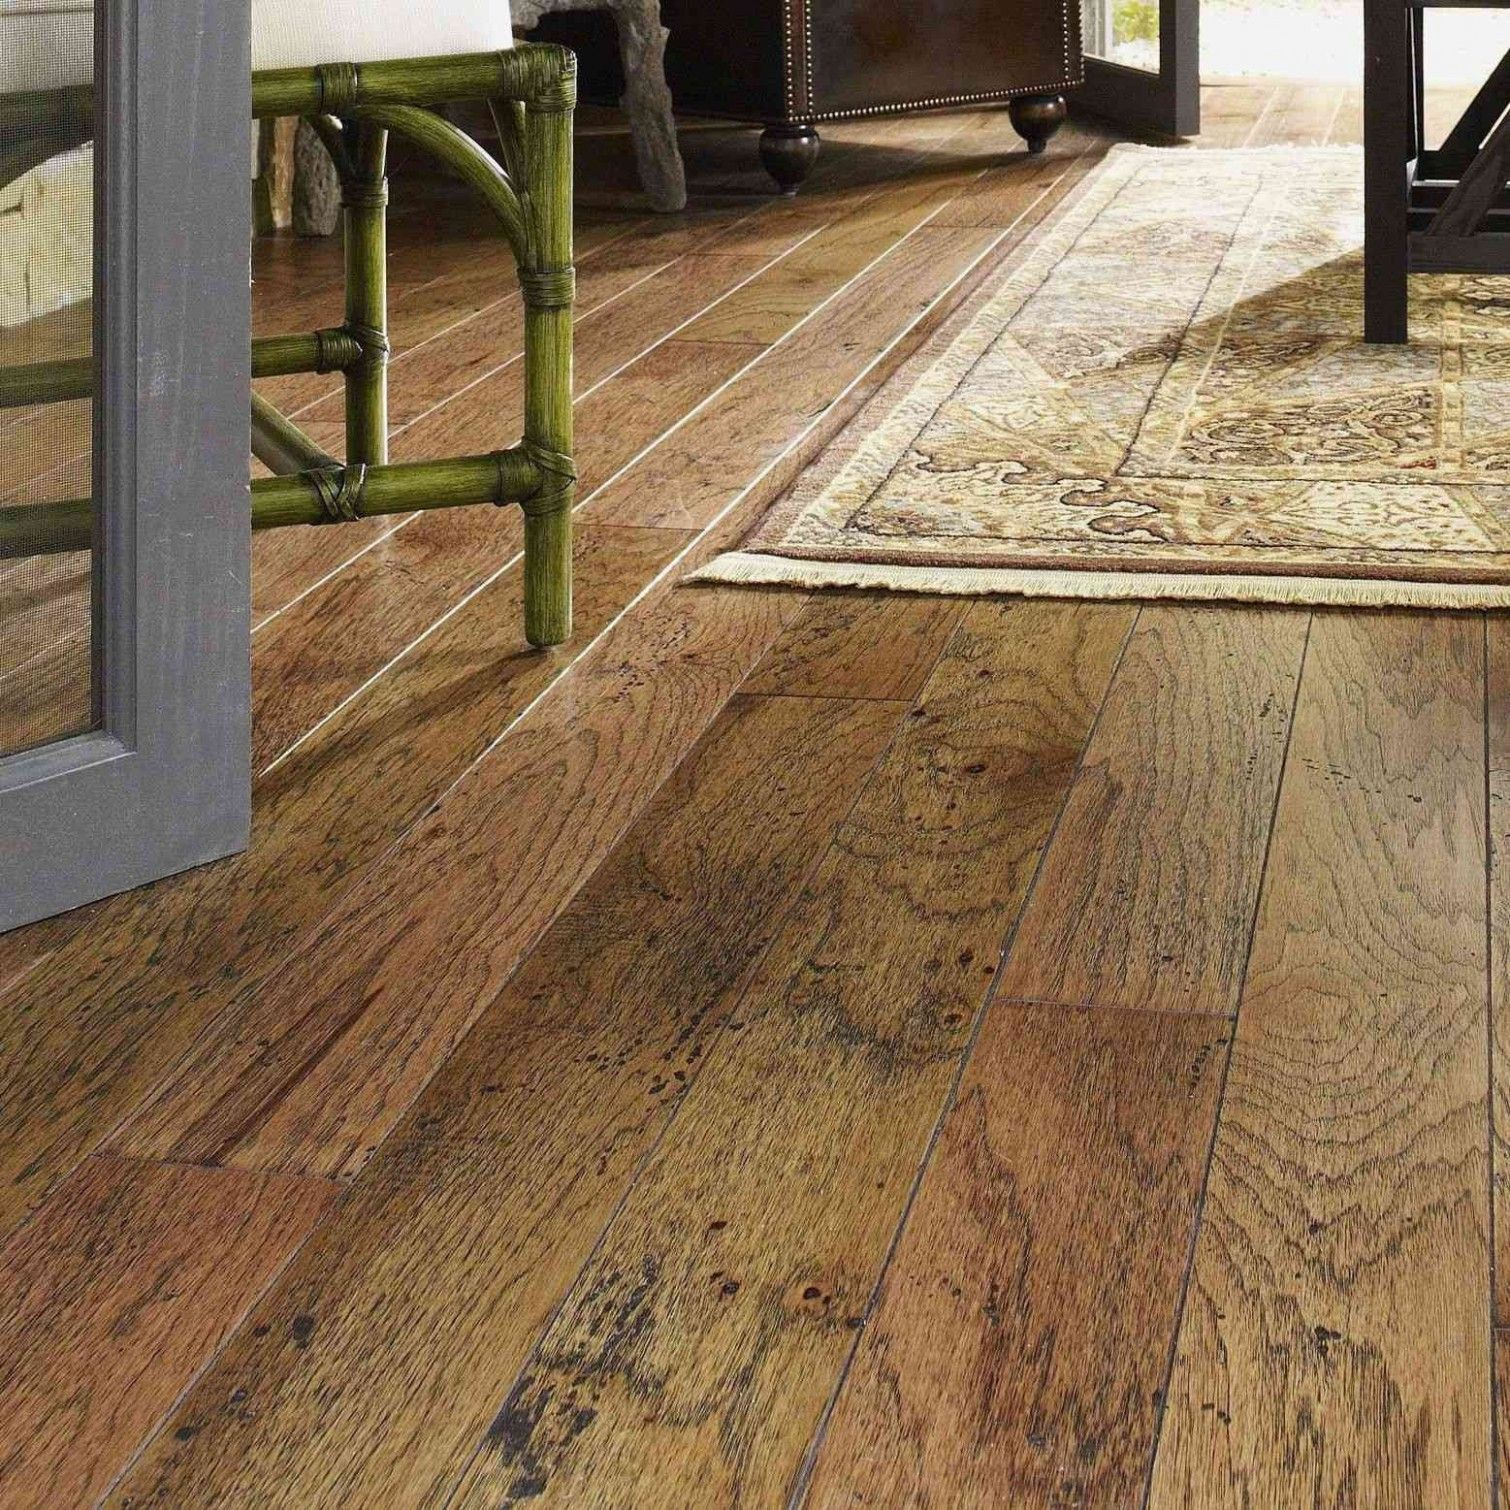 Is Wood Flooring Style Ideas Any Good? Seven Ways You Can